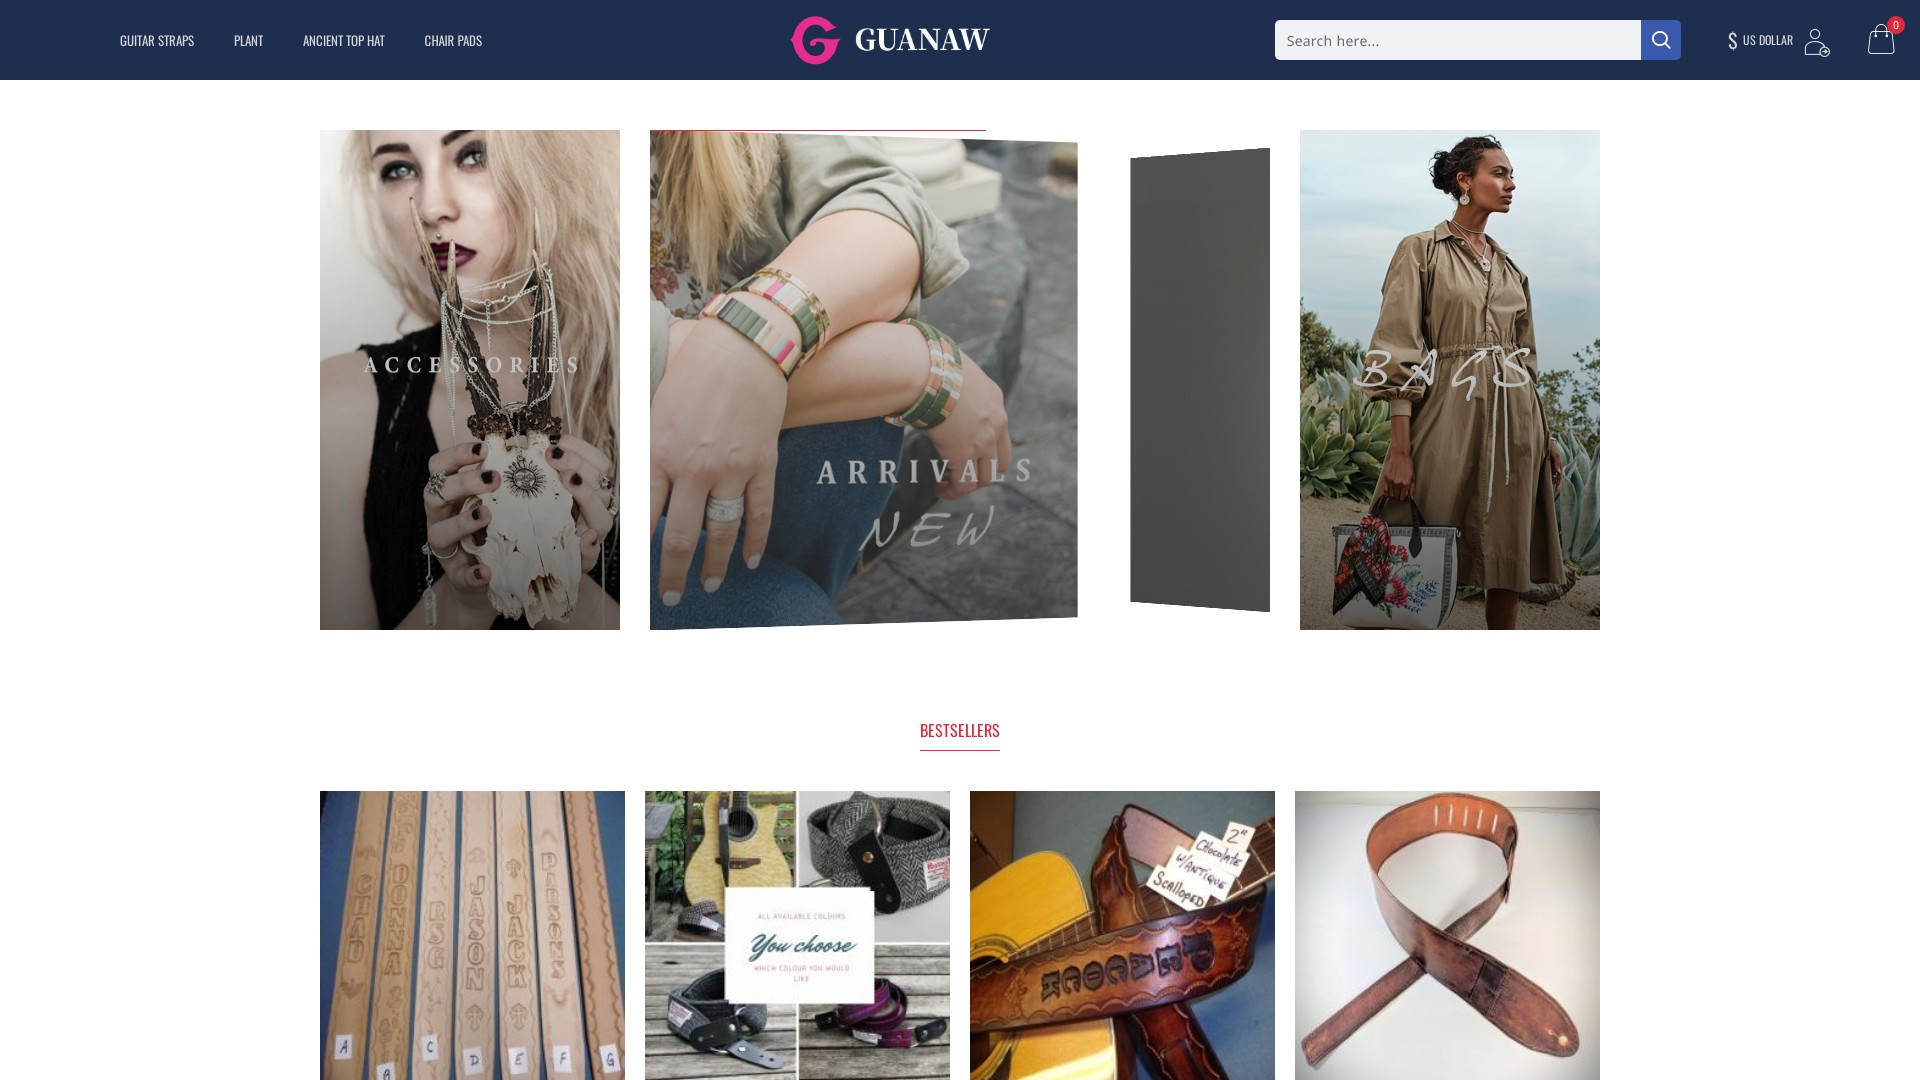 Is Guanaw a Scam? See the Review of the Online Store